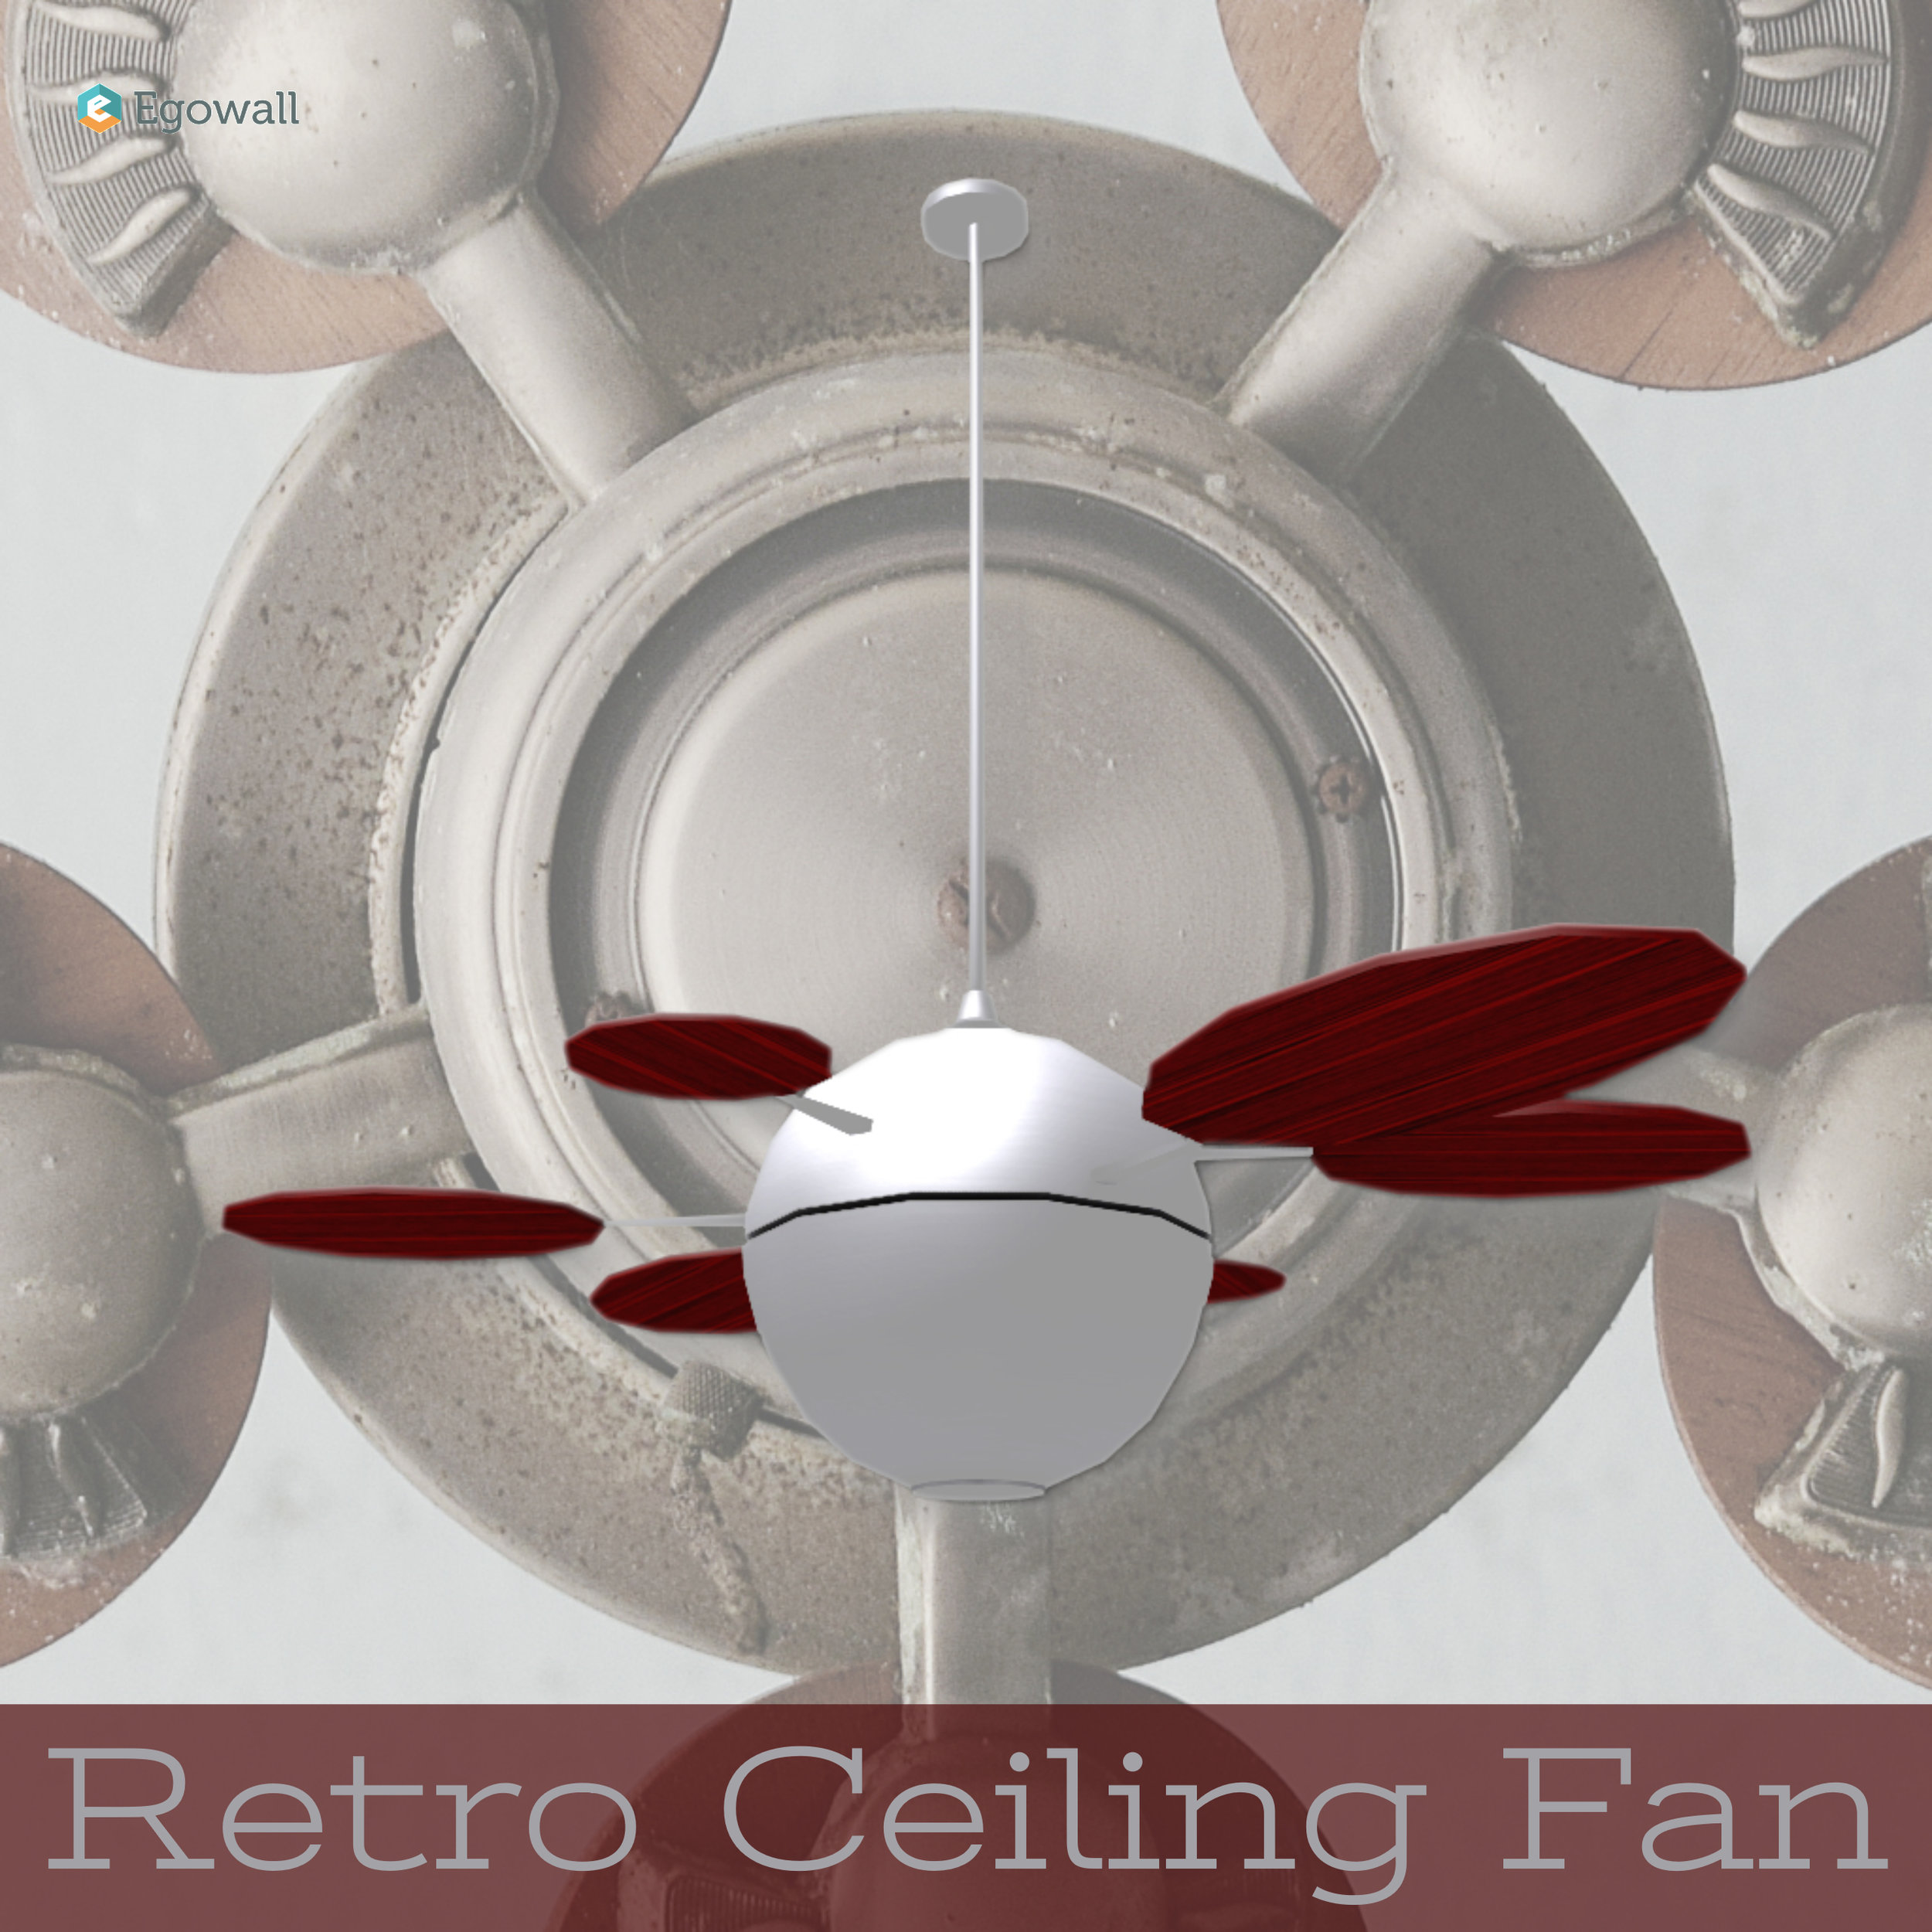 Retro Ceiling Fan.Instagram.jpg